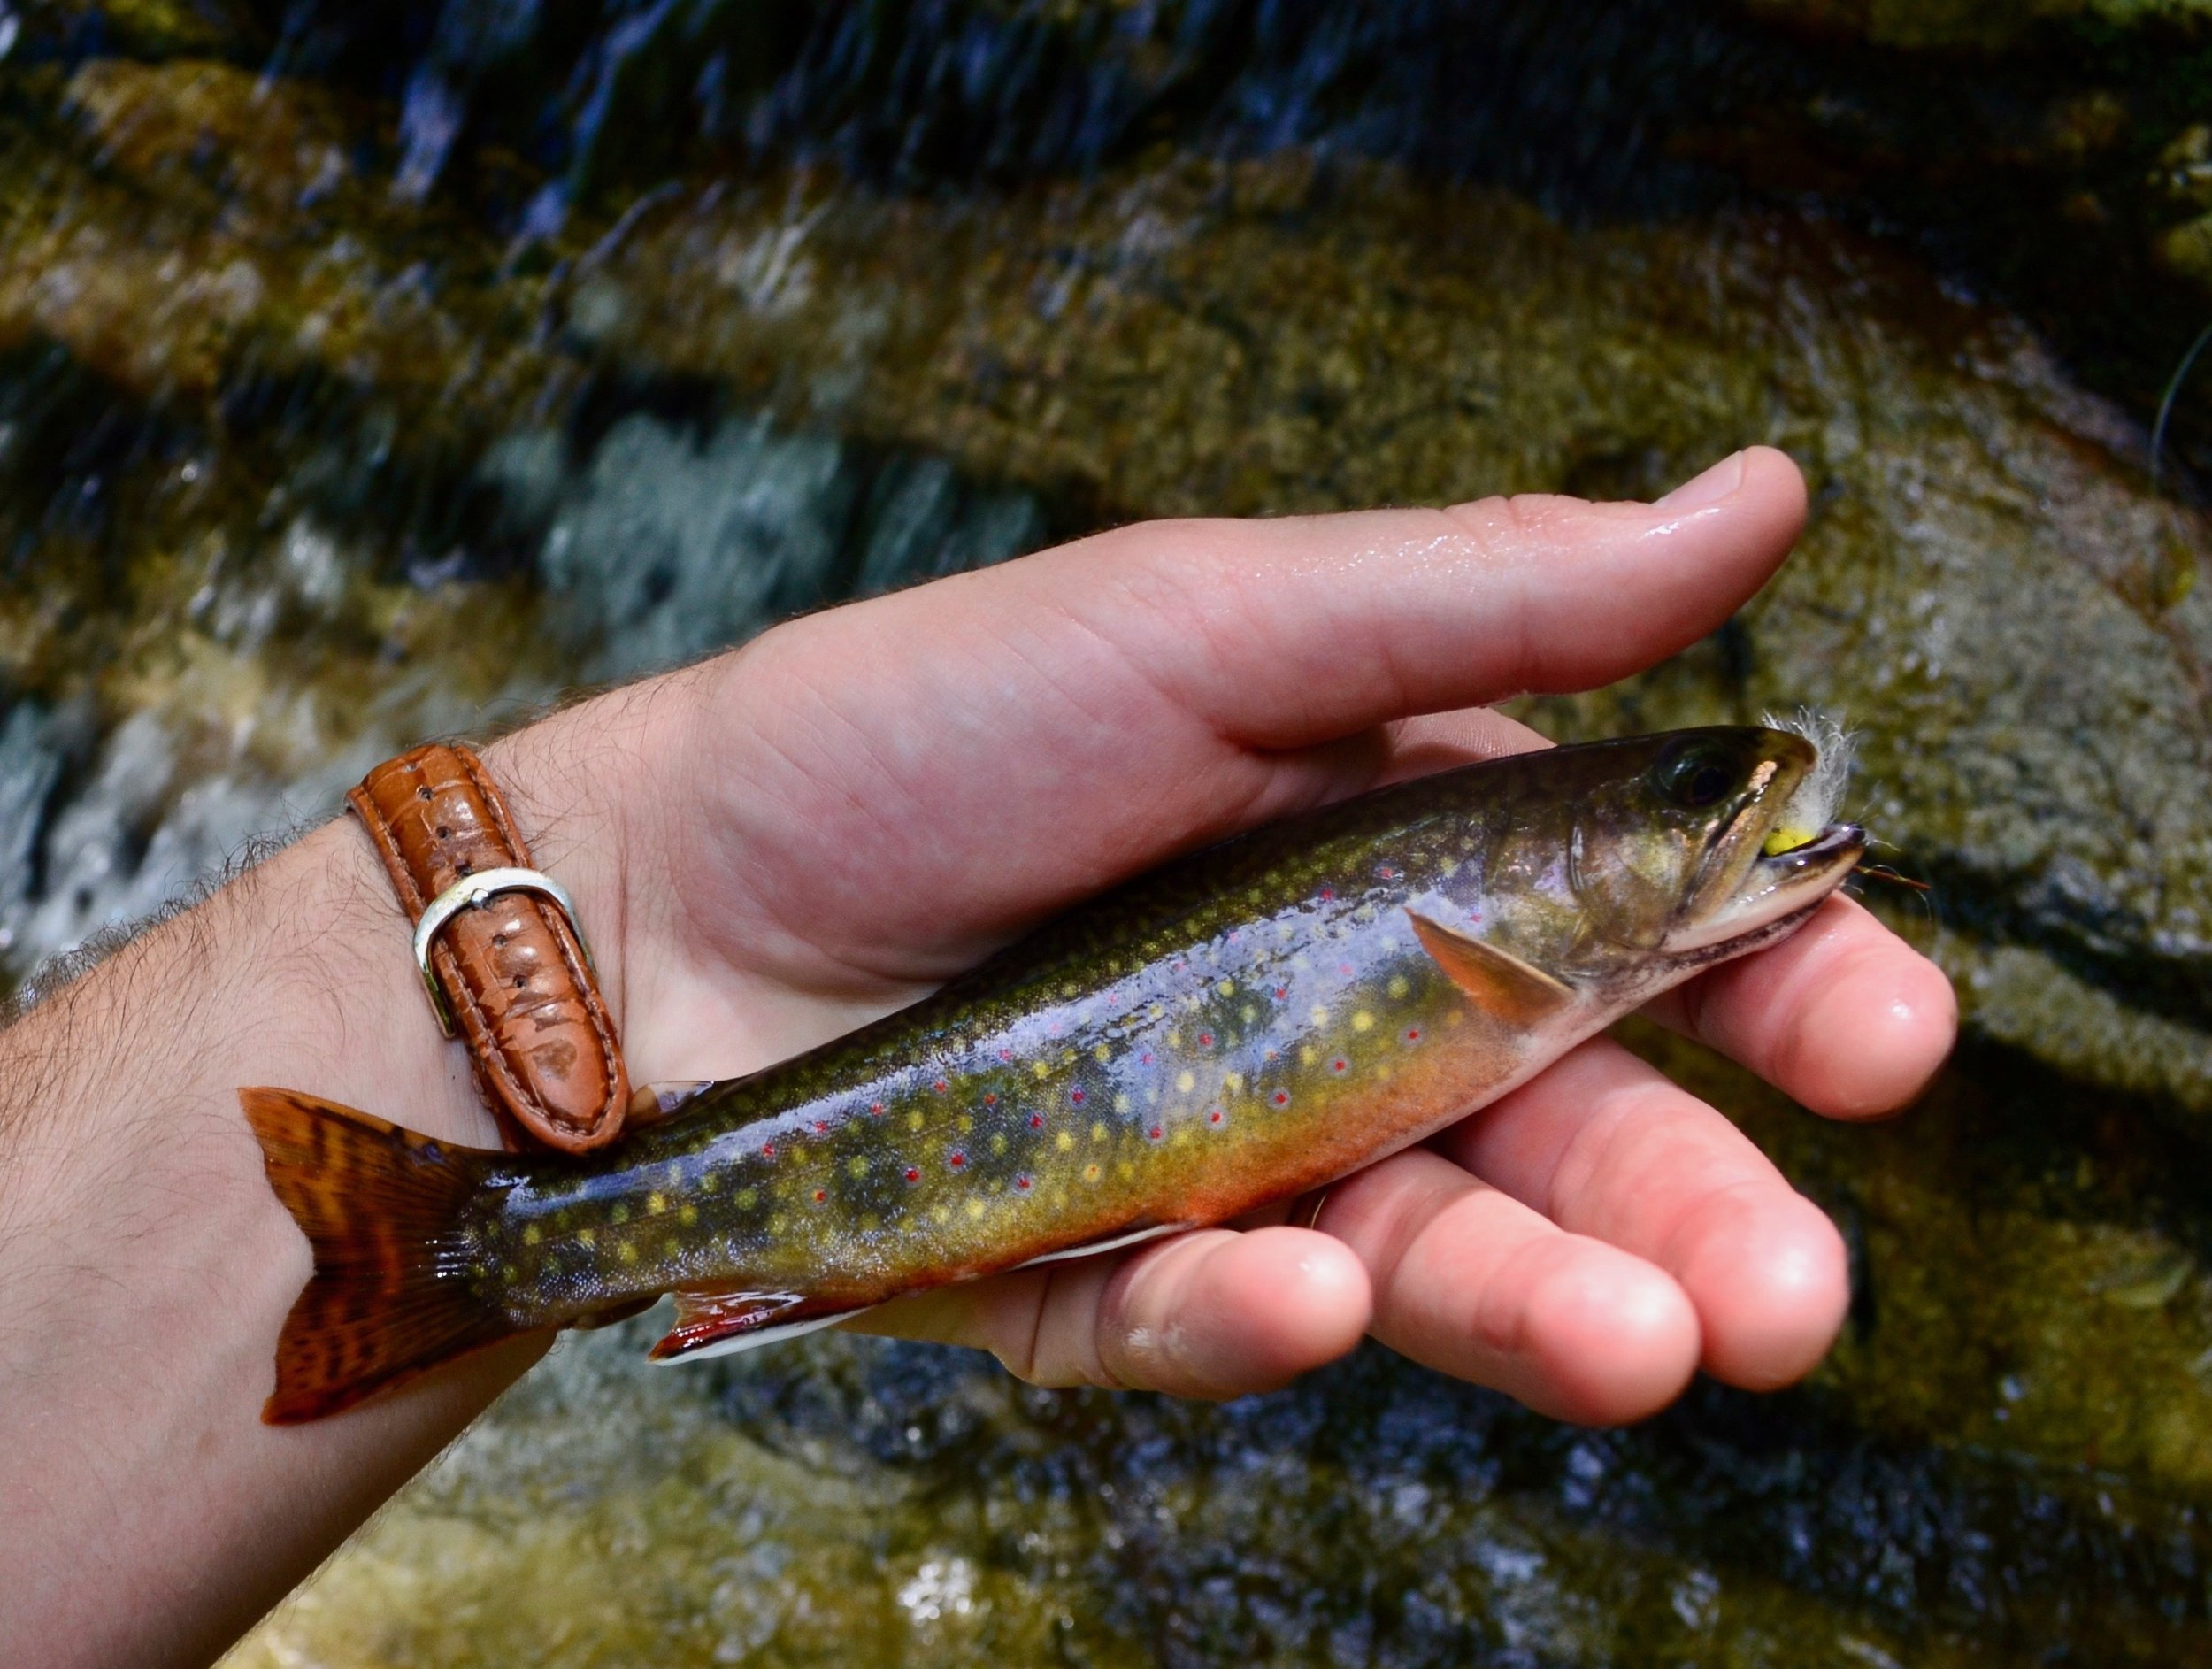 This healthy little Virginian brook trout was fooled with a foam fly right behind a large waterfall.